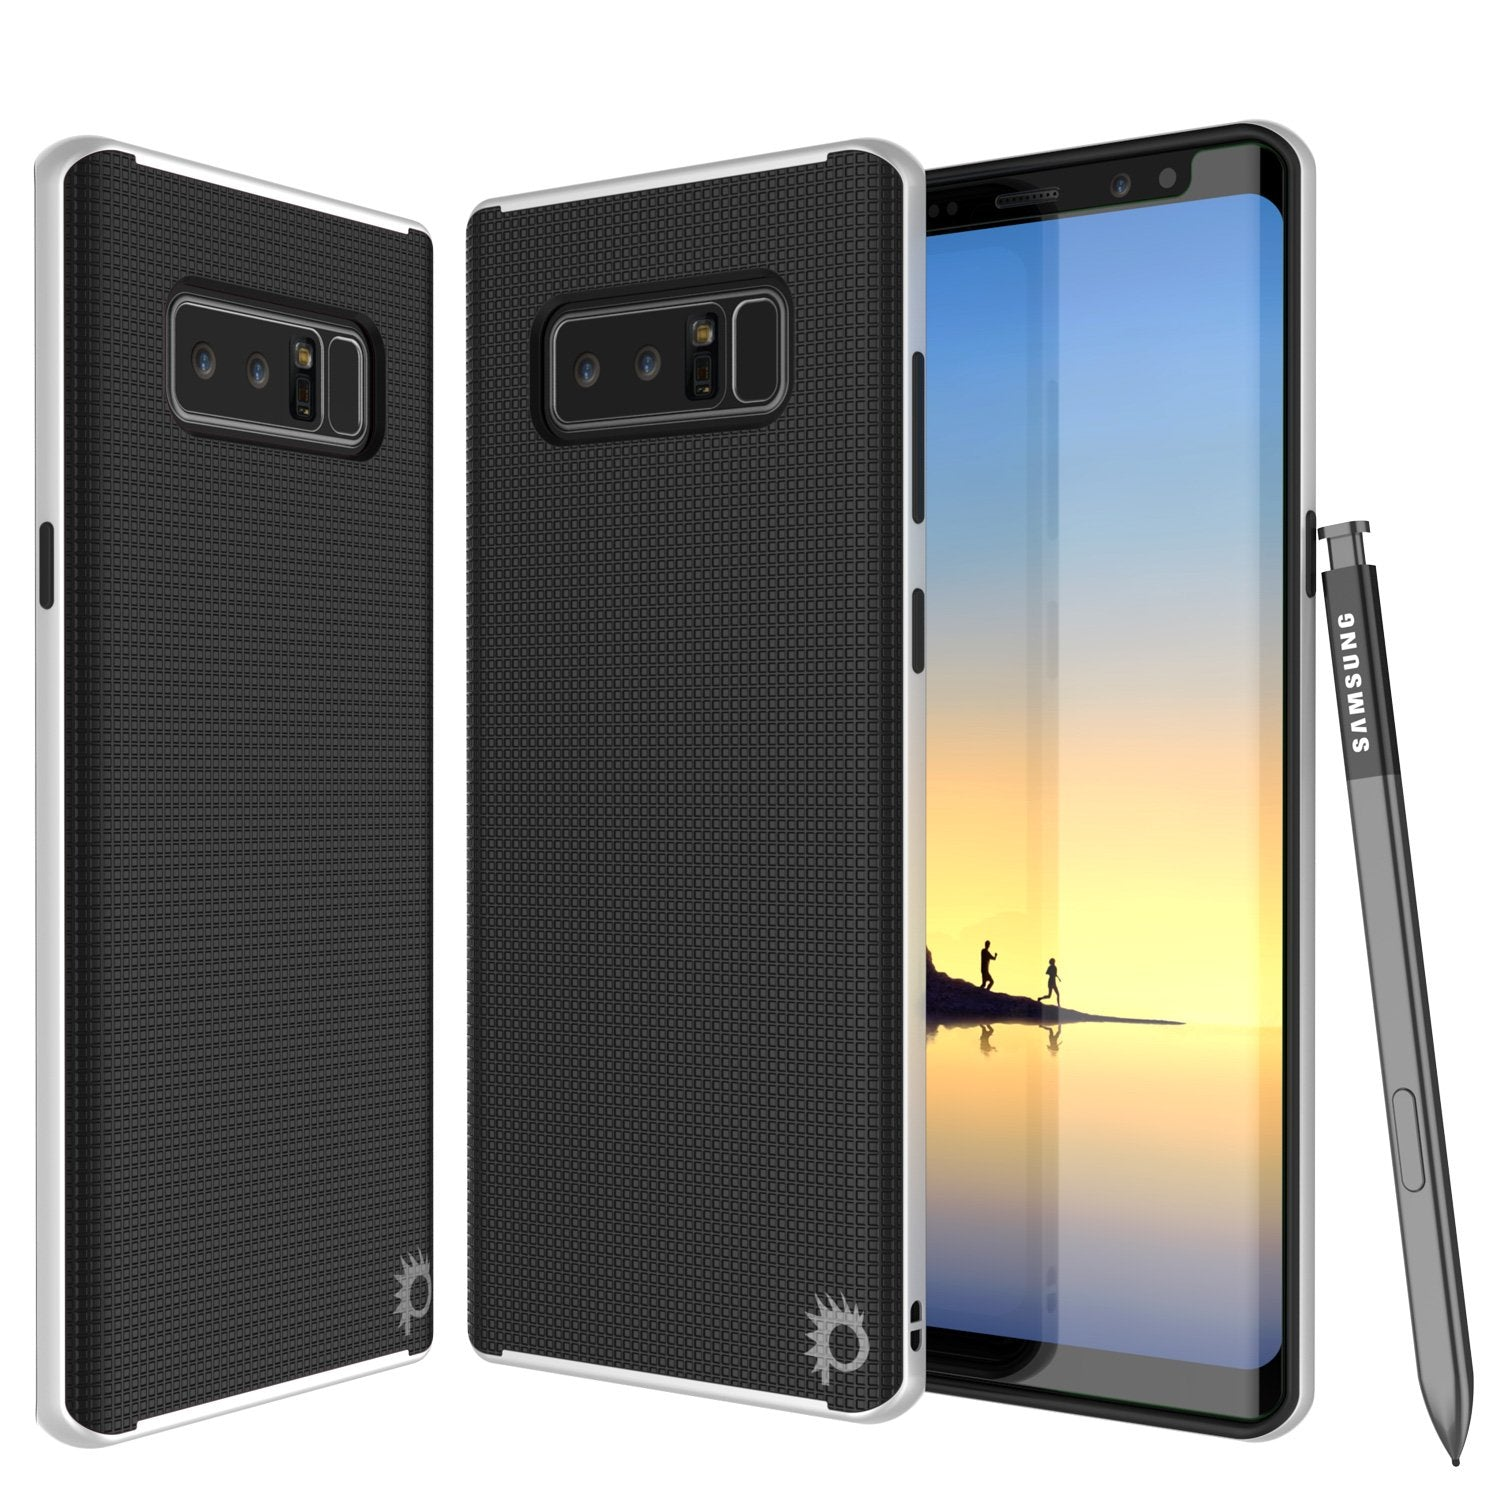 Galaxy Note 8 Case, PunkCase [Stealth Series] Hybrid 3-Piece Shockproof Dual Layer Cover [Non-Slip] [Soft TPU + PC Bumper] with PUNKSHIELD Screen Protector for Samsung Note 8 [White]